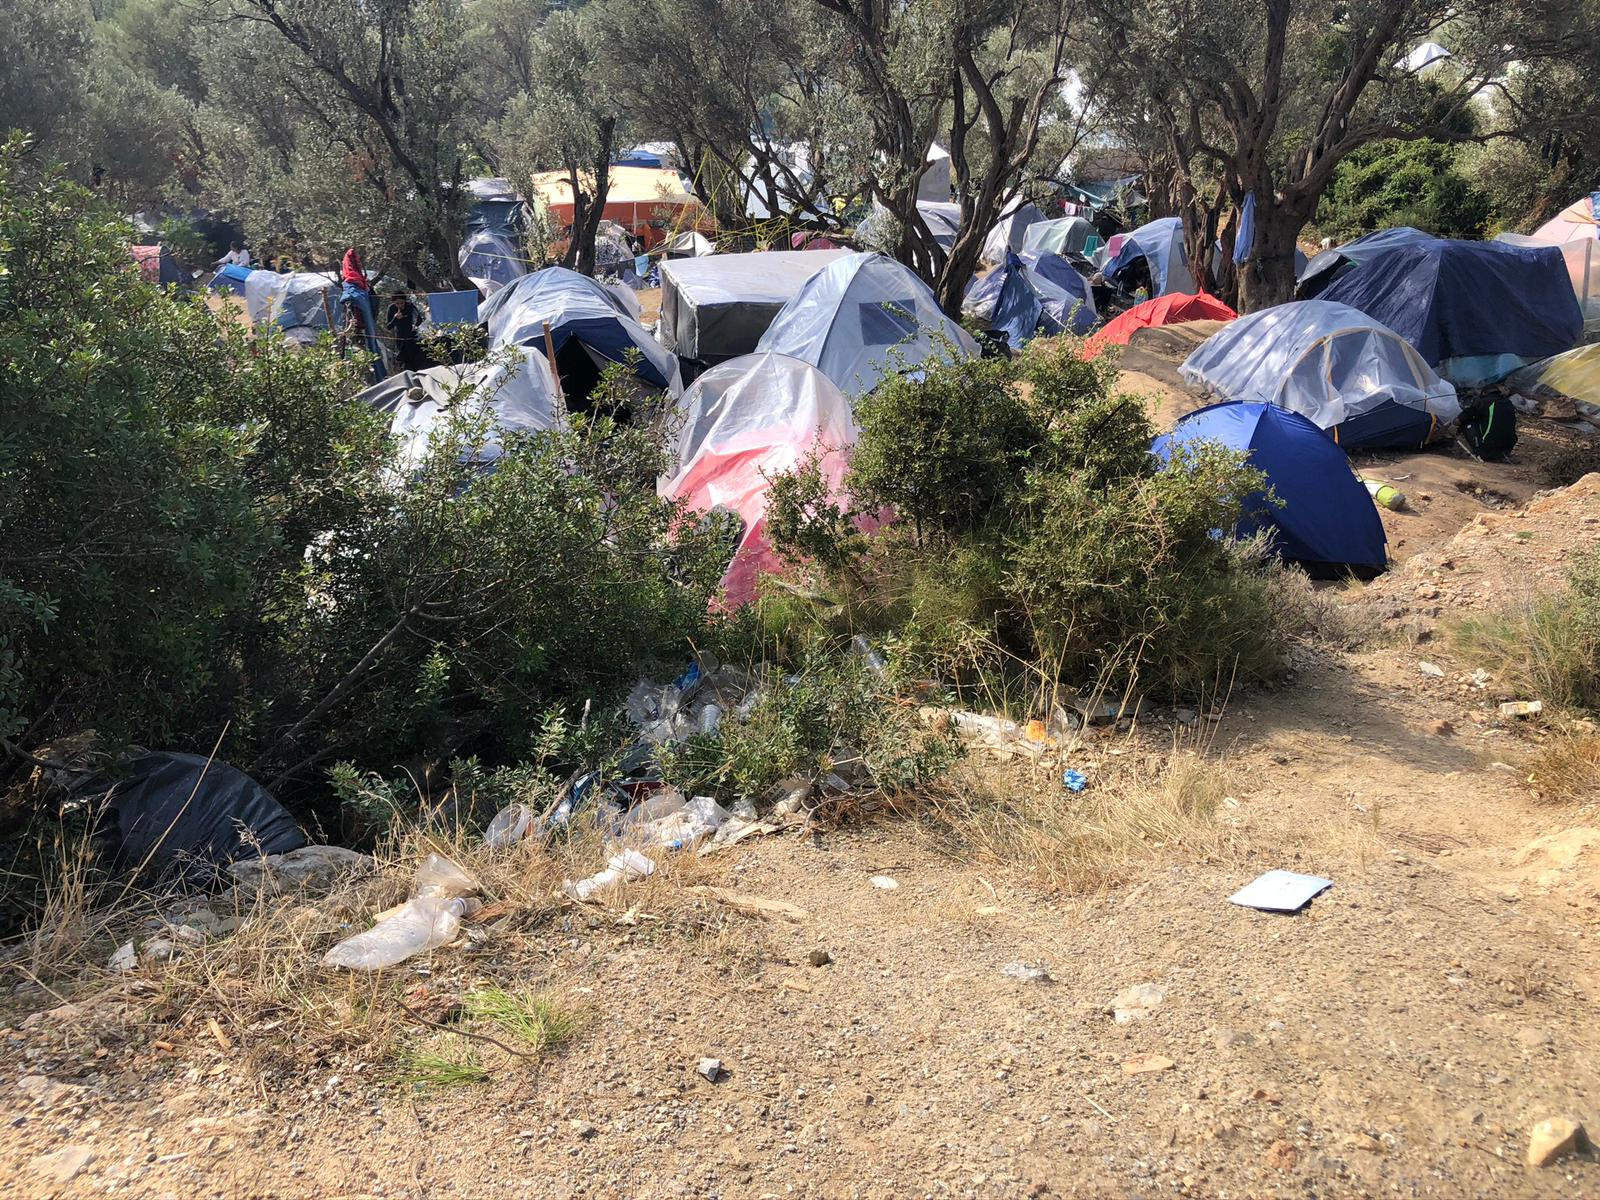 camps in field, outskirts of Greece